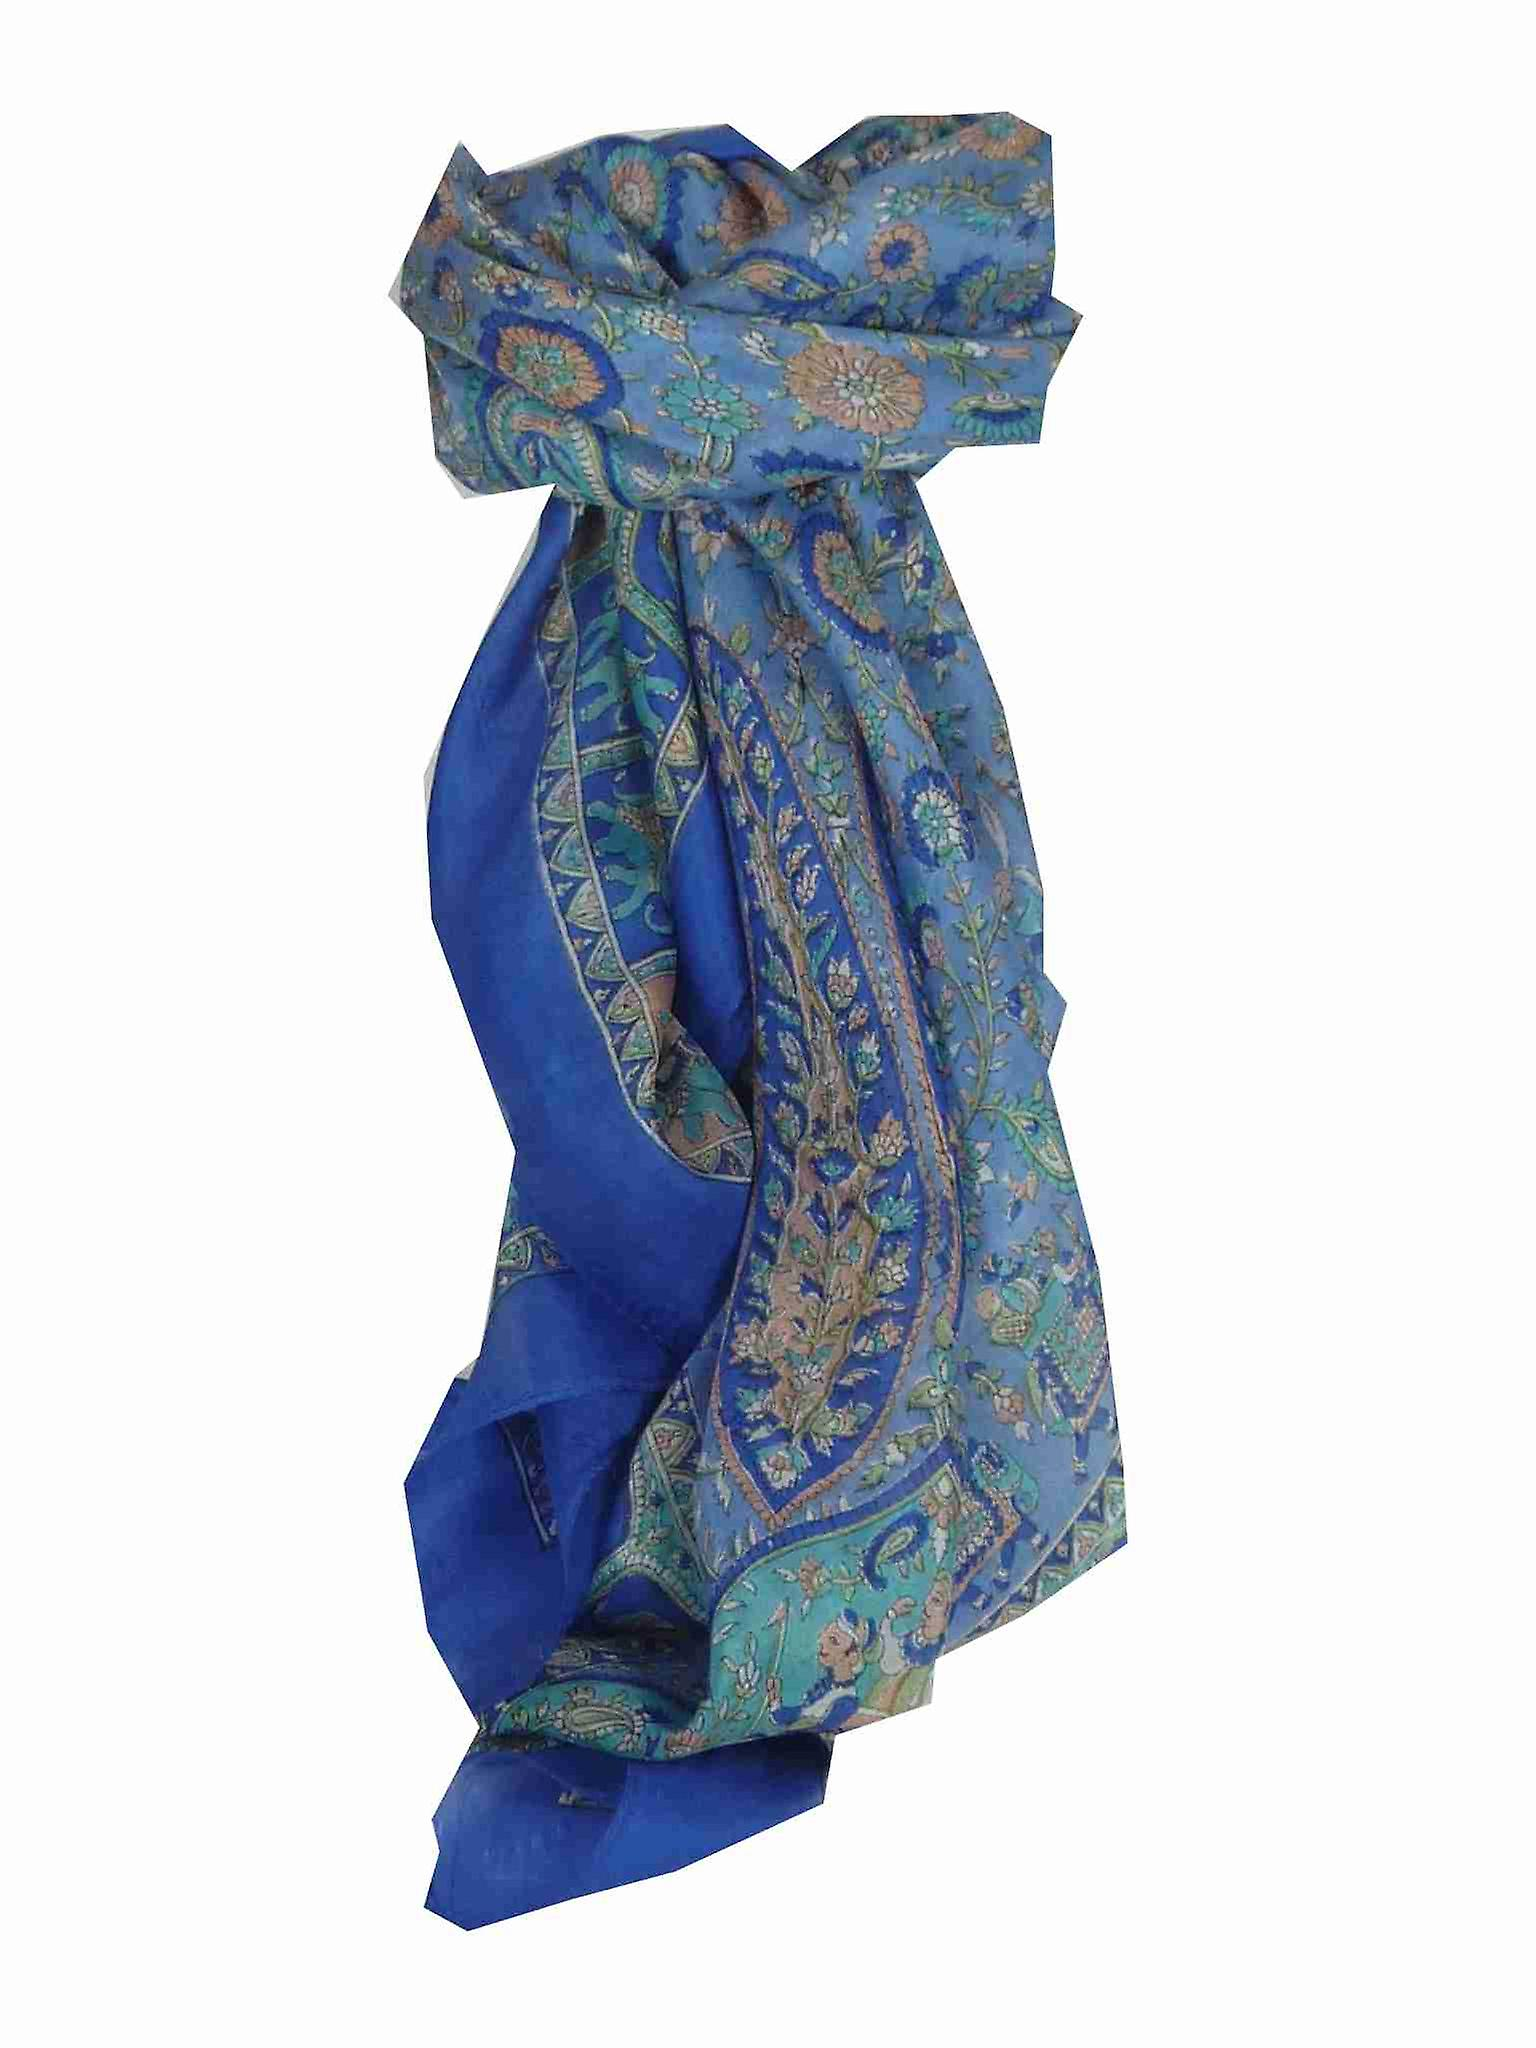 Mulberry Silk Traditional Square Scarf Donya Blue by Pashmina & Silk